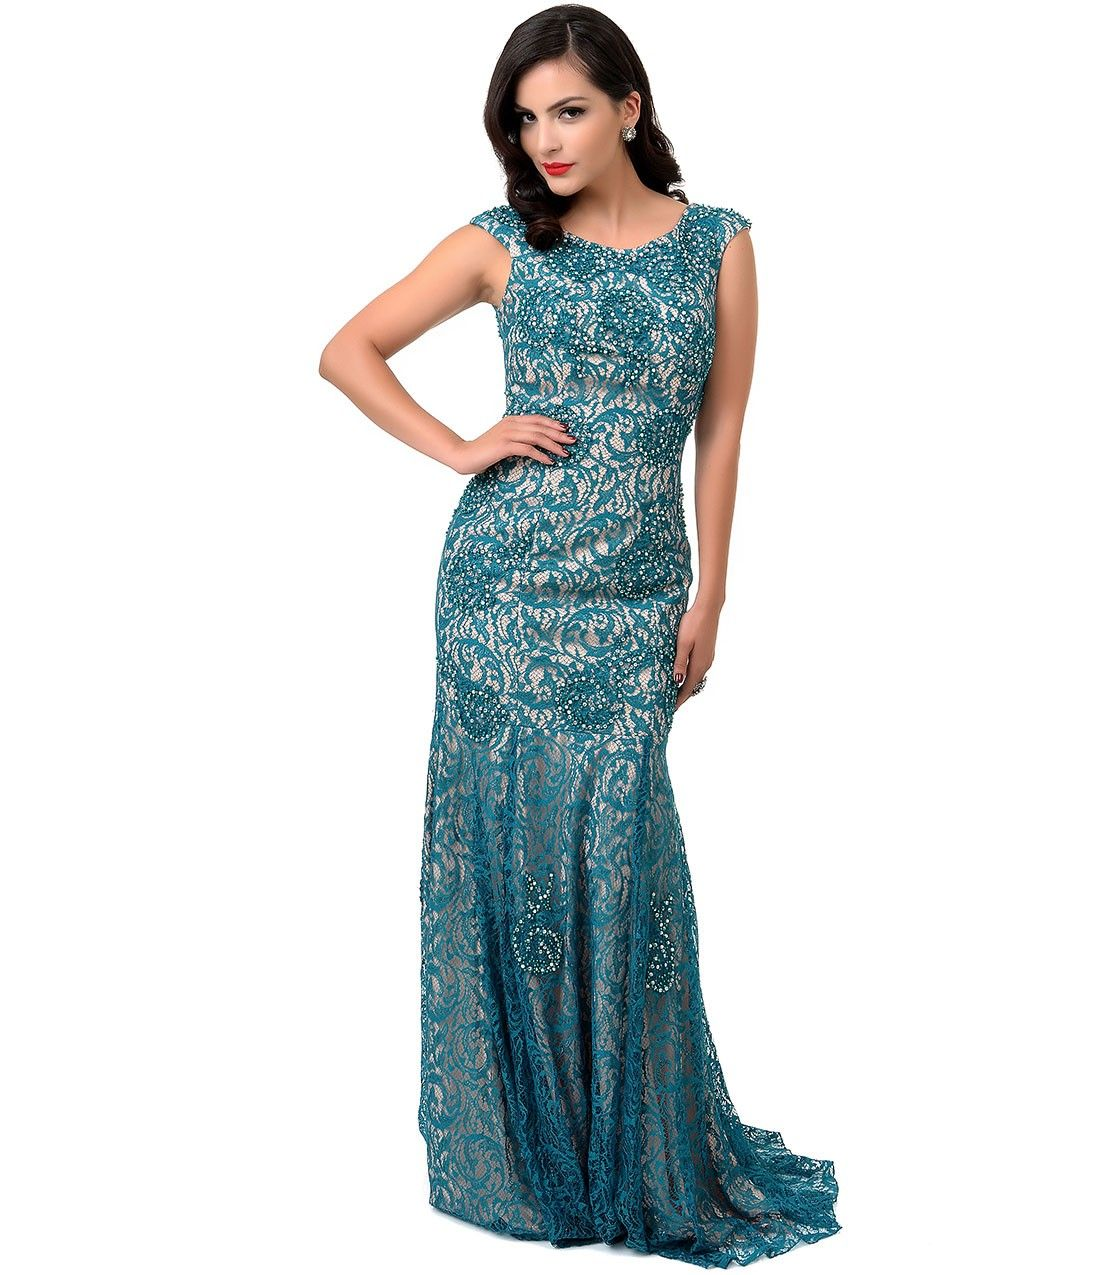 S style hunter green lace beaded mermaid evening gown vintage